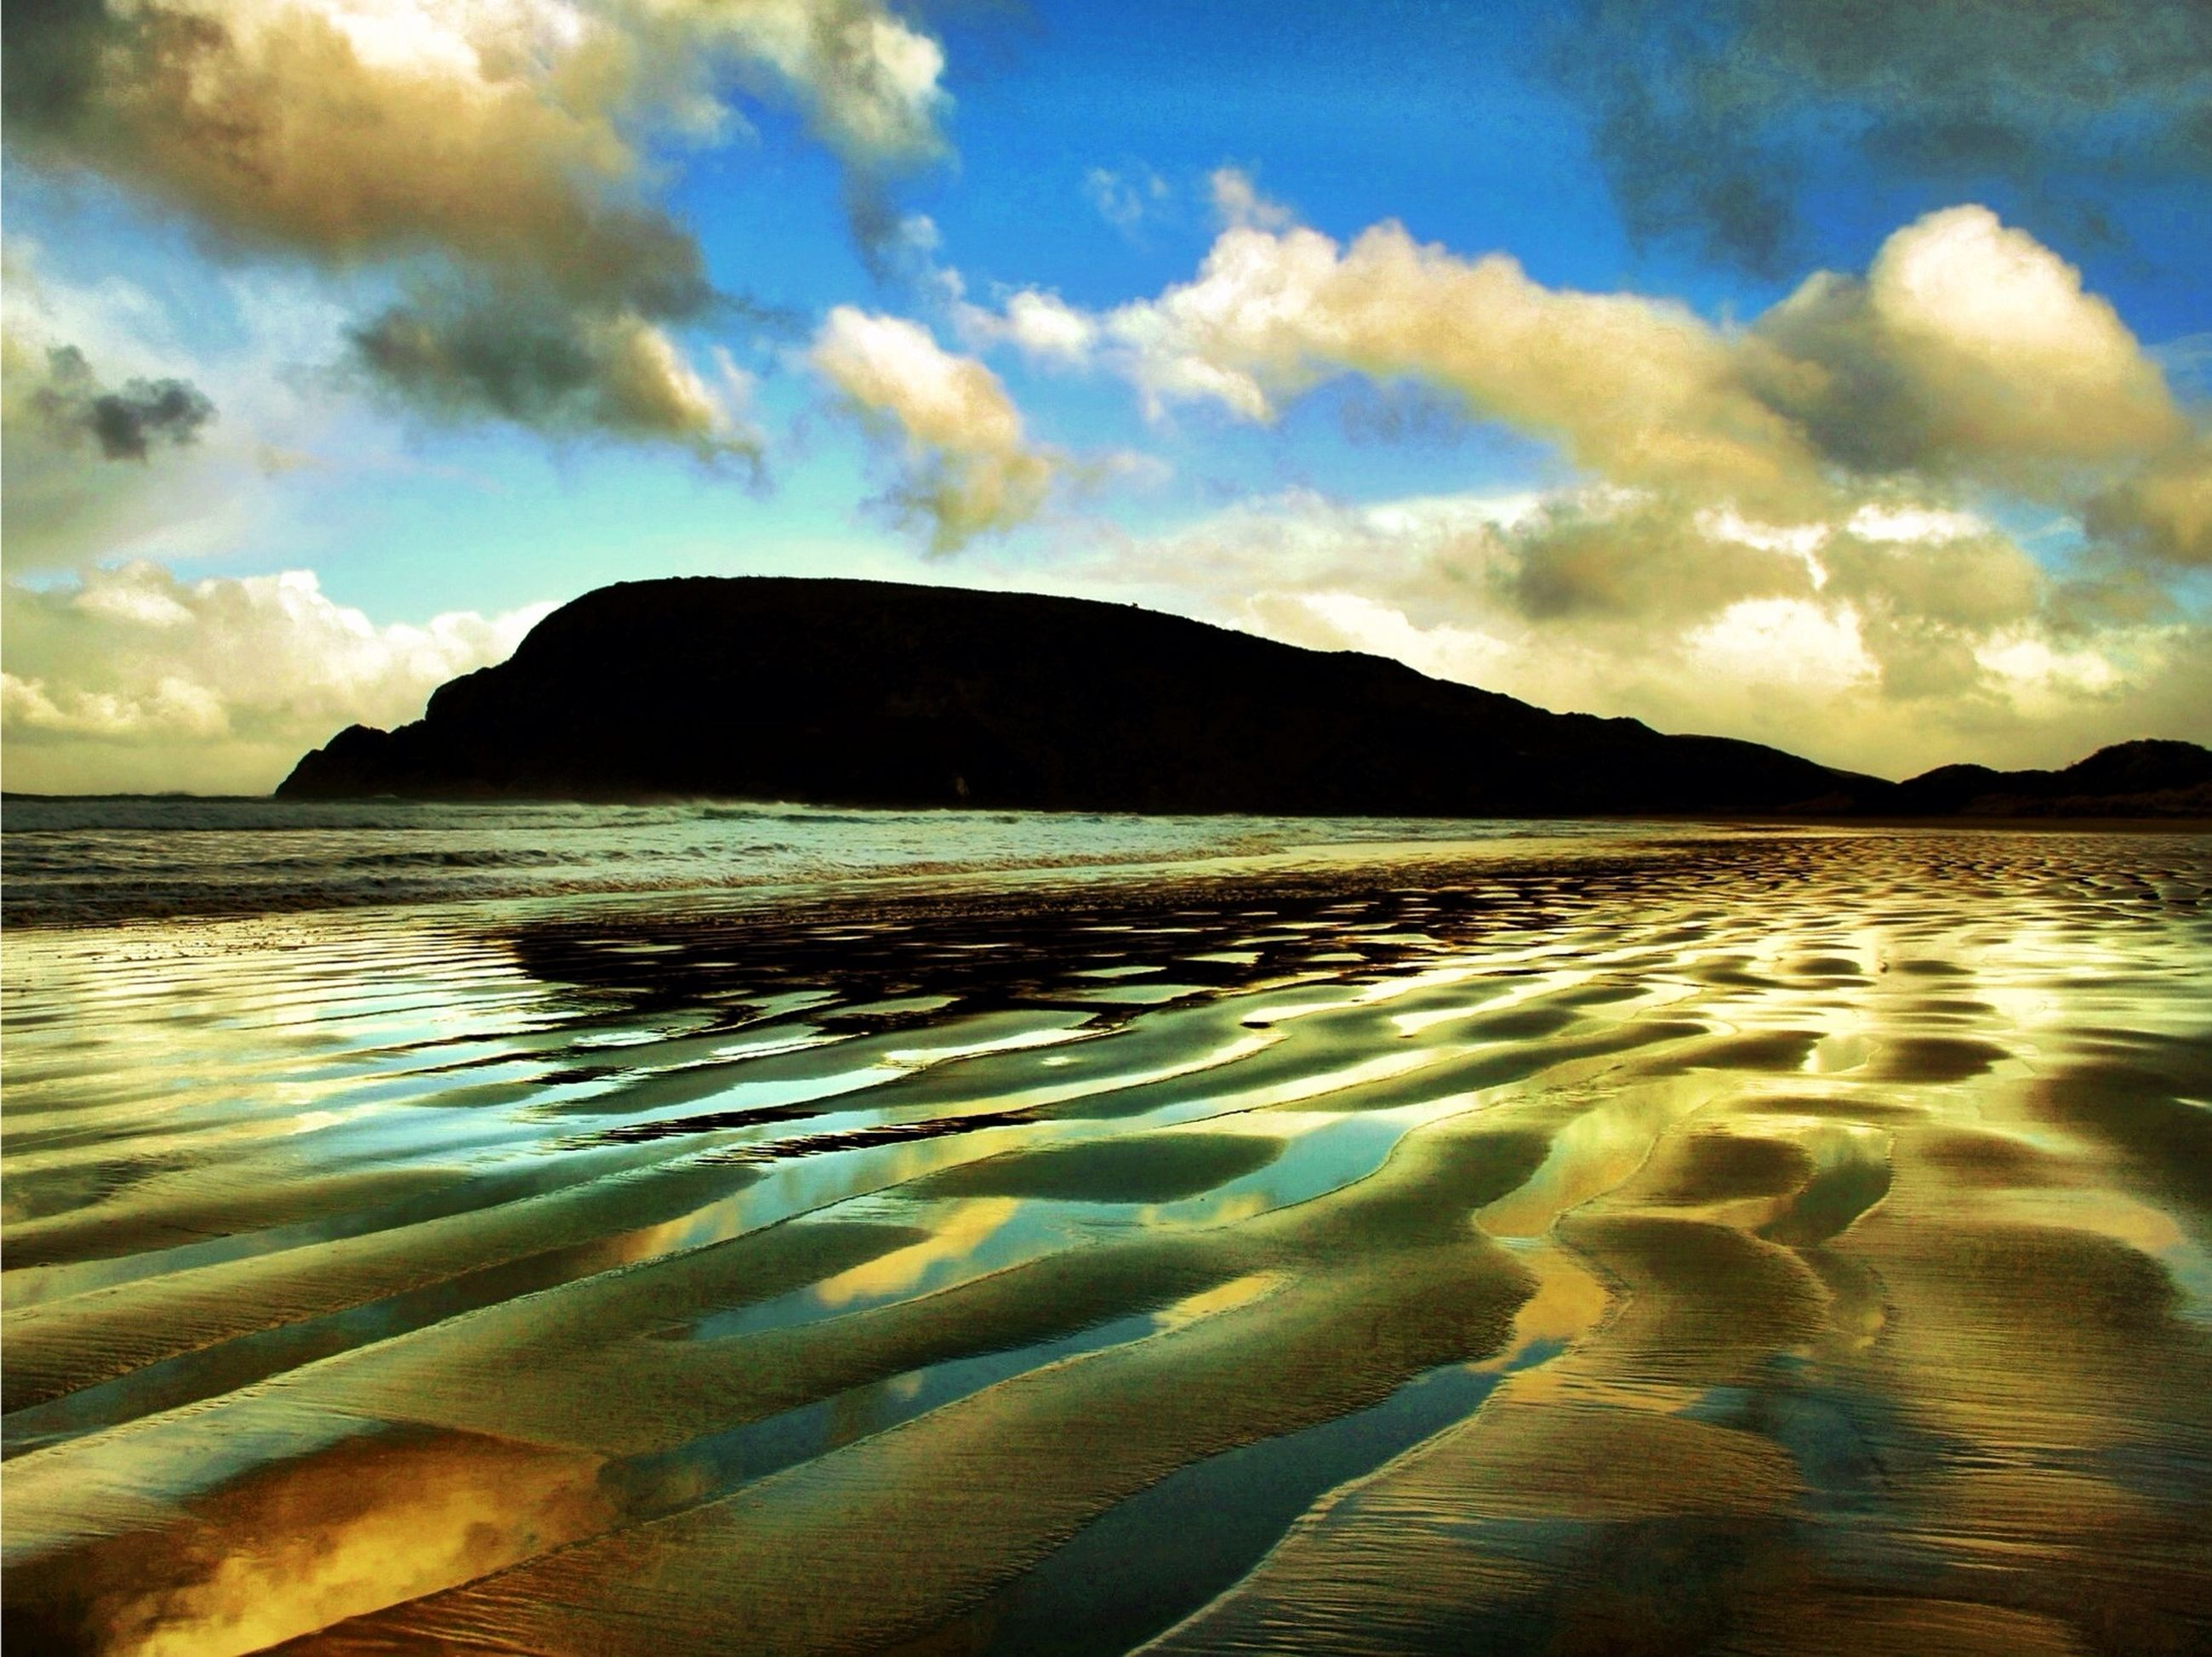 water, tranquil scene, sky, scenics, tranquility, beauty in nature, reflection, cloud - sky, sea, mountain, nature, sunset, cloud, idyllic, beach, lake, waterfront, rippled, shore, outdoors